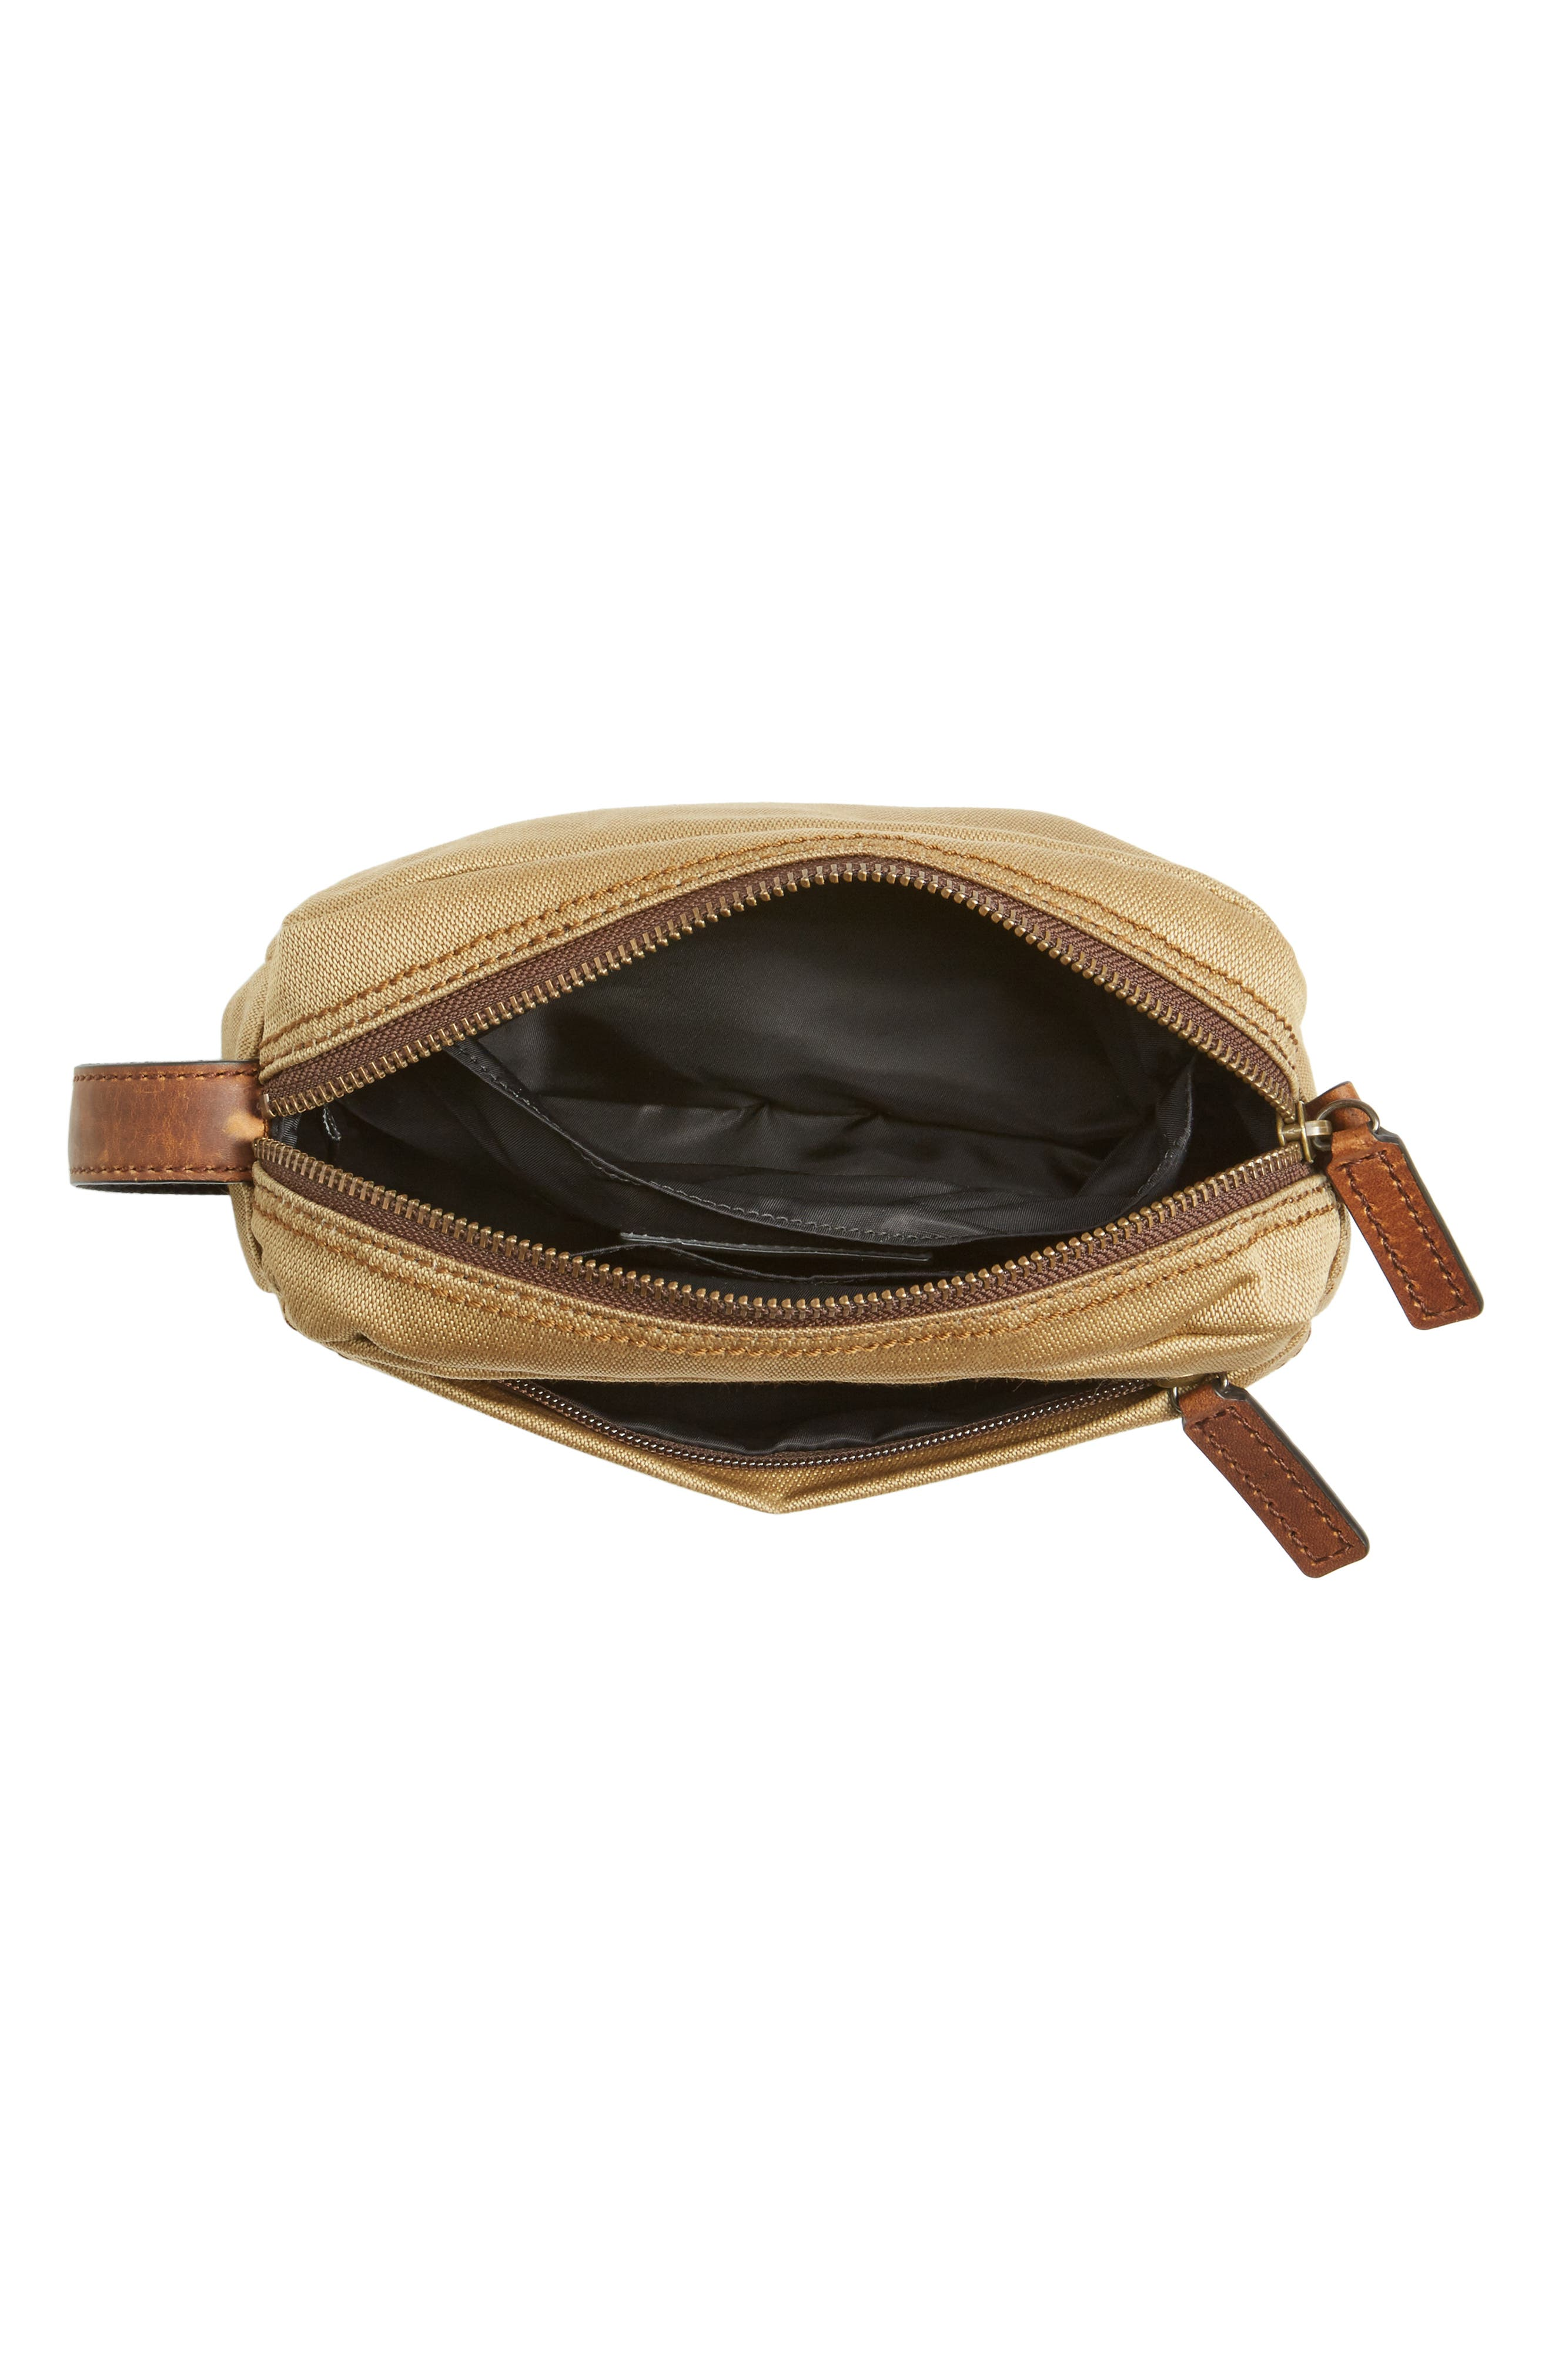 Carter Dopp Kit,                             Alternate thumbnail 3, color,                             231